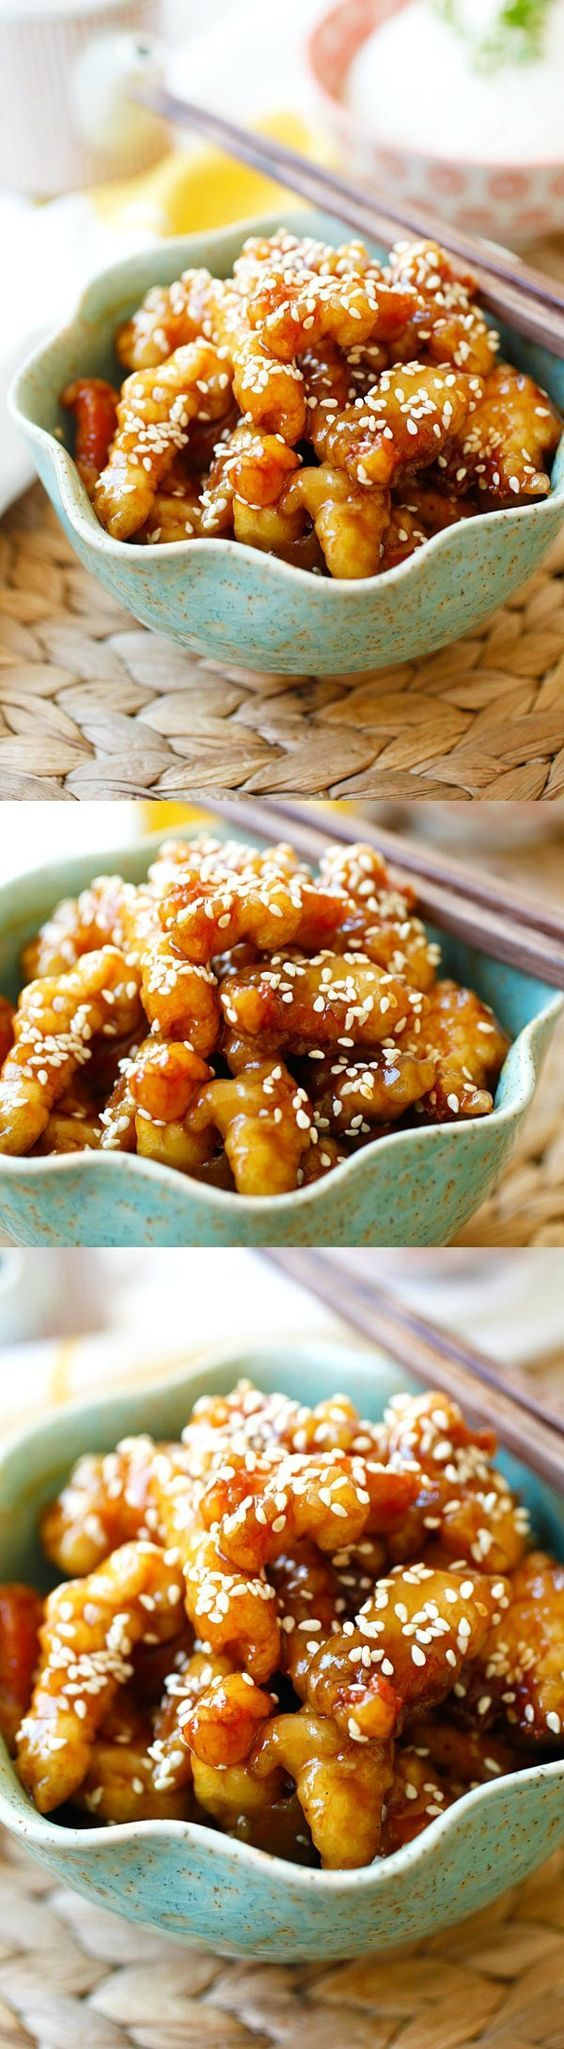 Sesame Chicken - crispy chicken with sweet savory sauce with sesame seeds. Best…